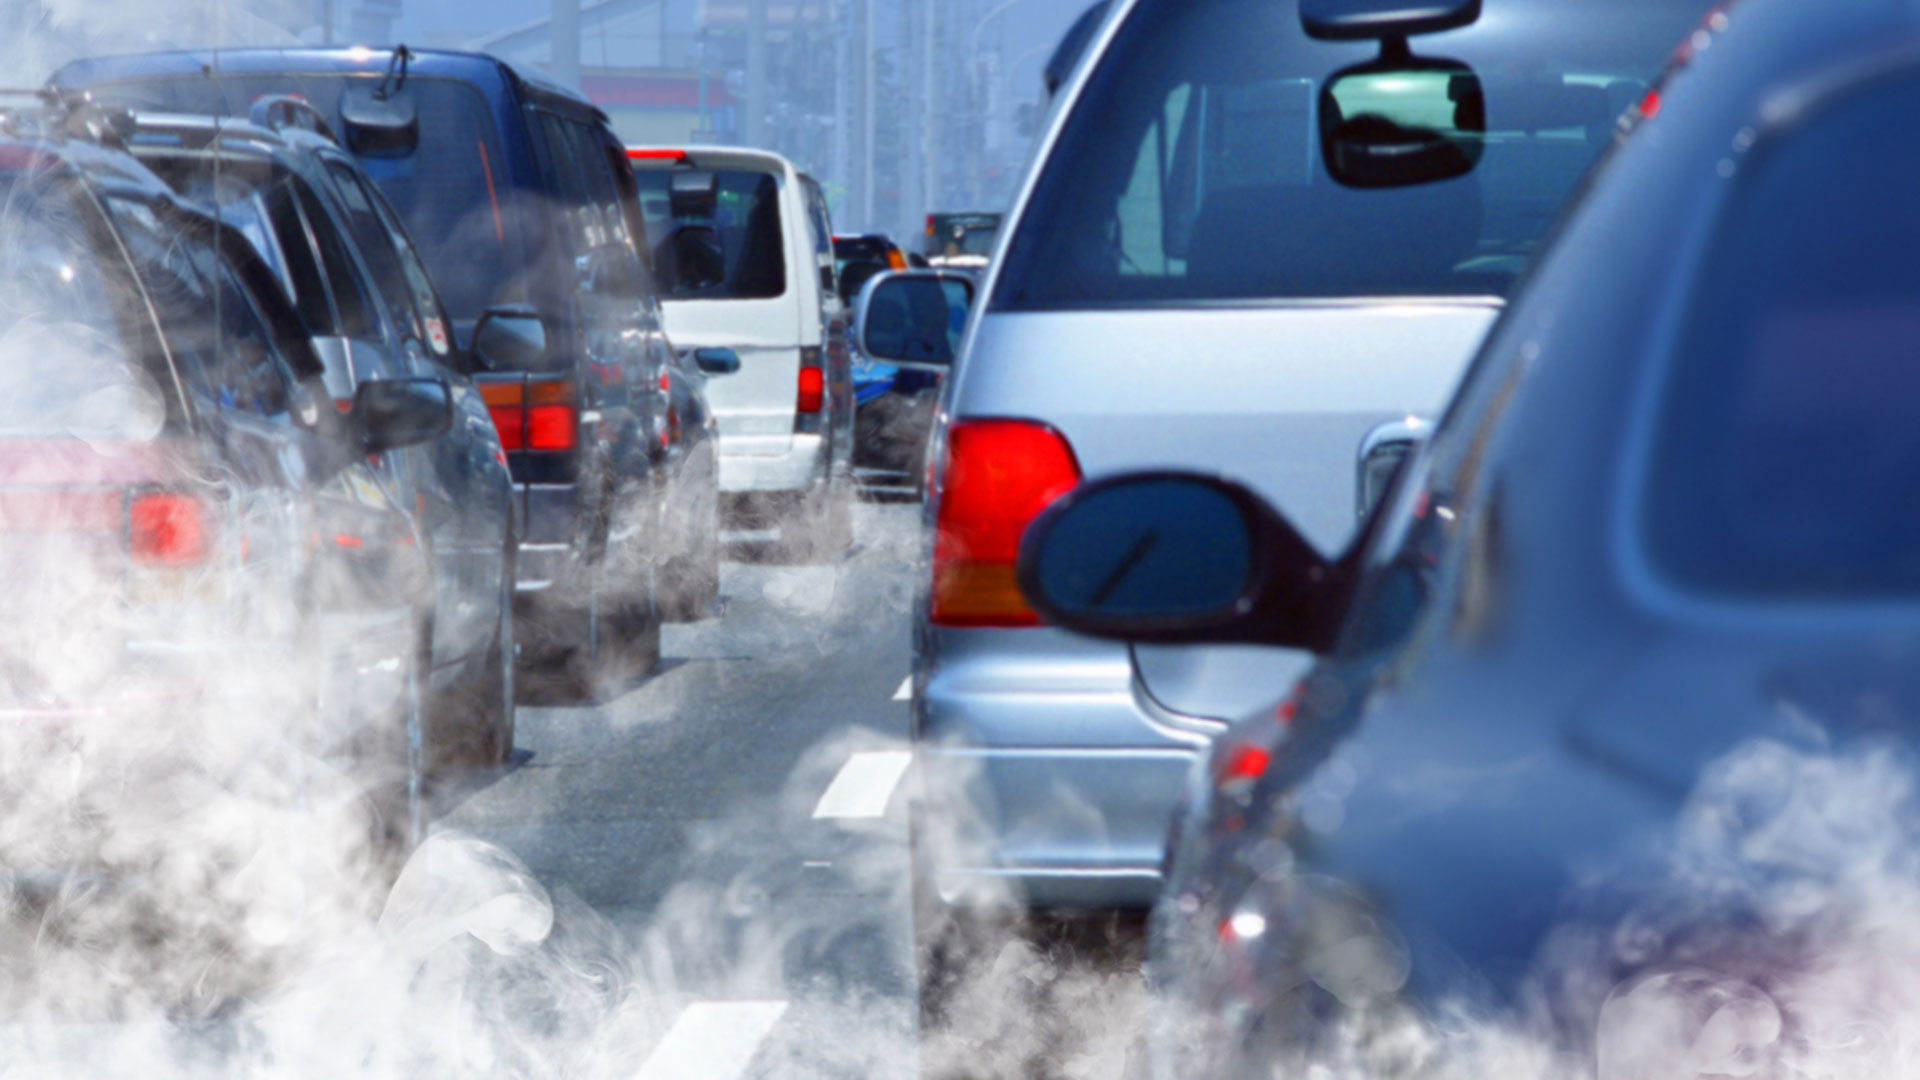 cars in traffic emitting pollution